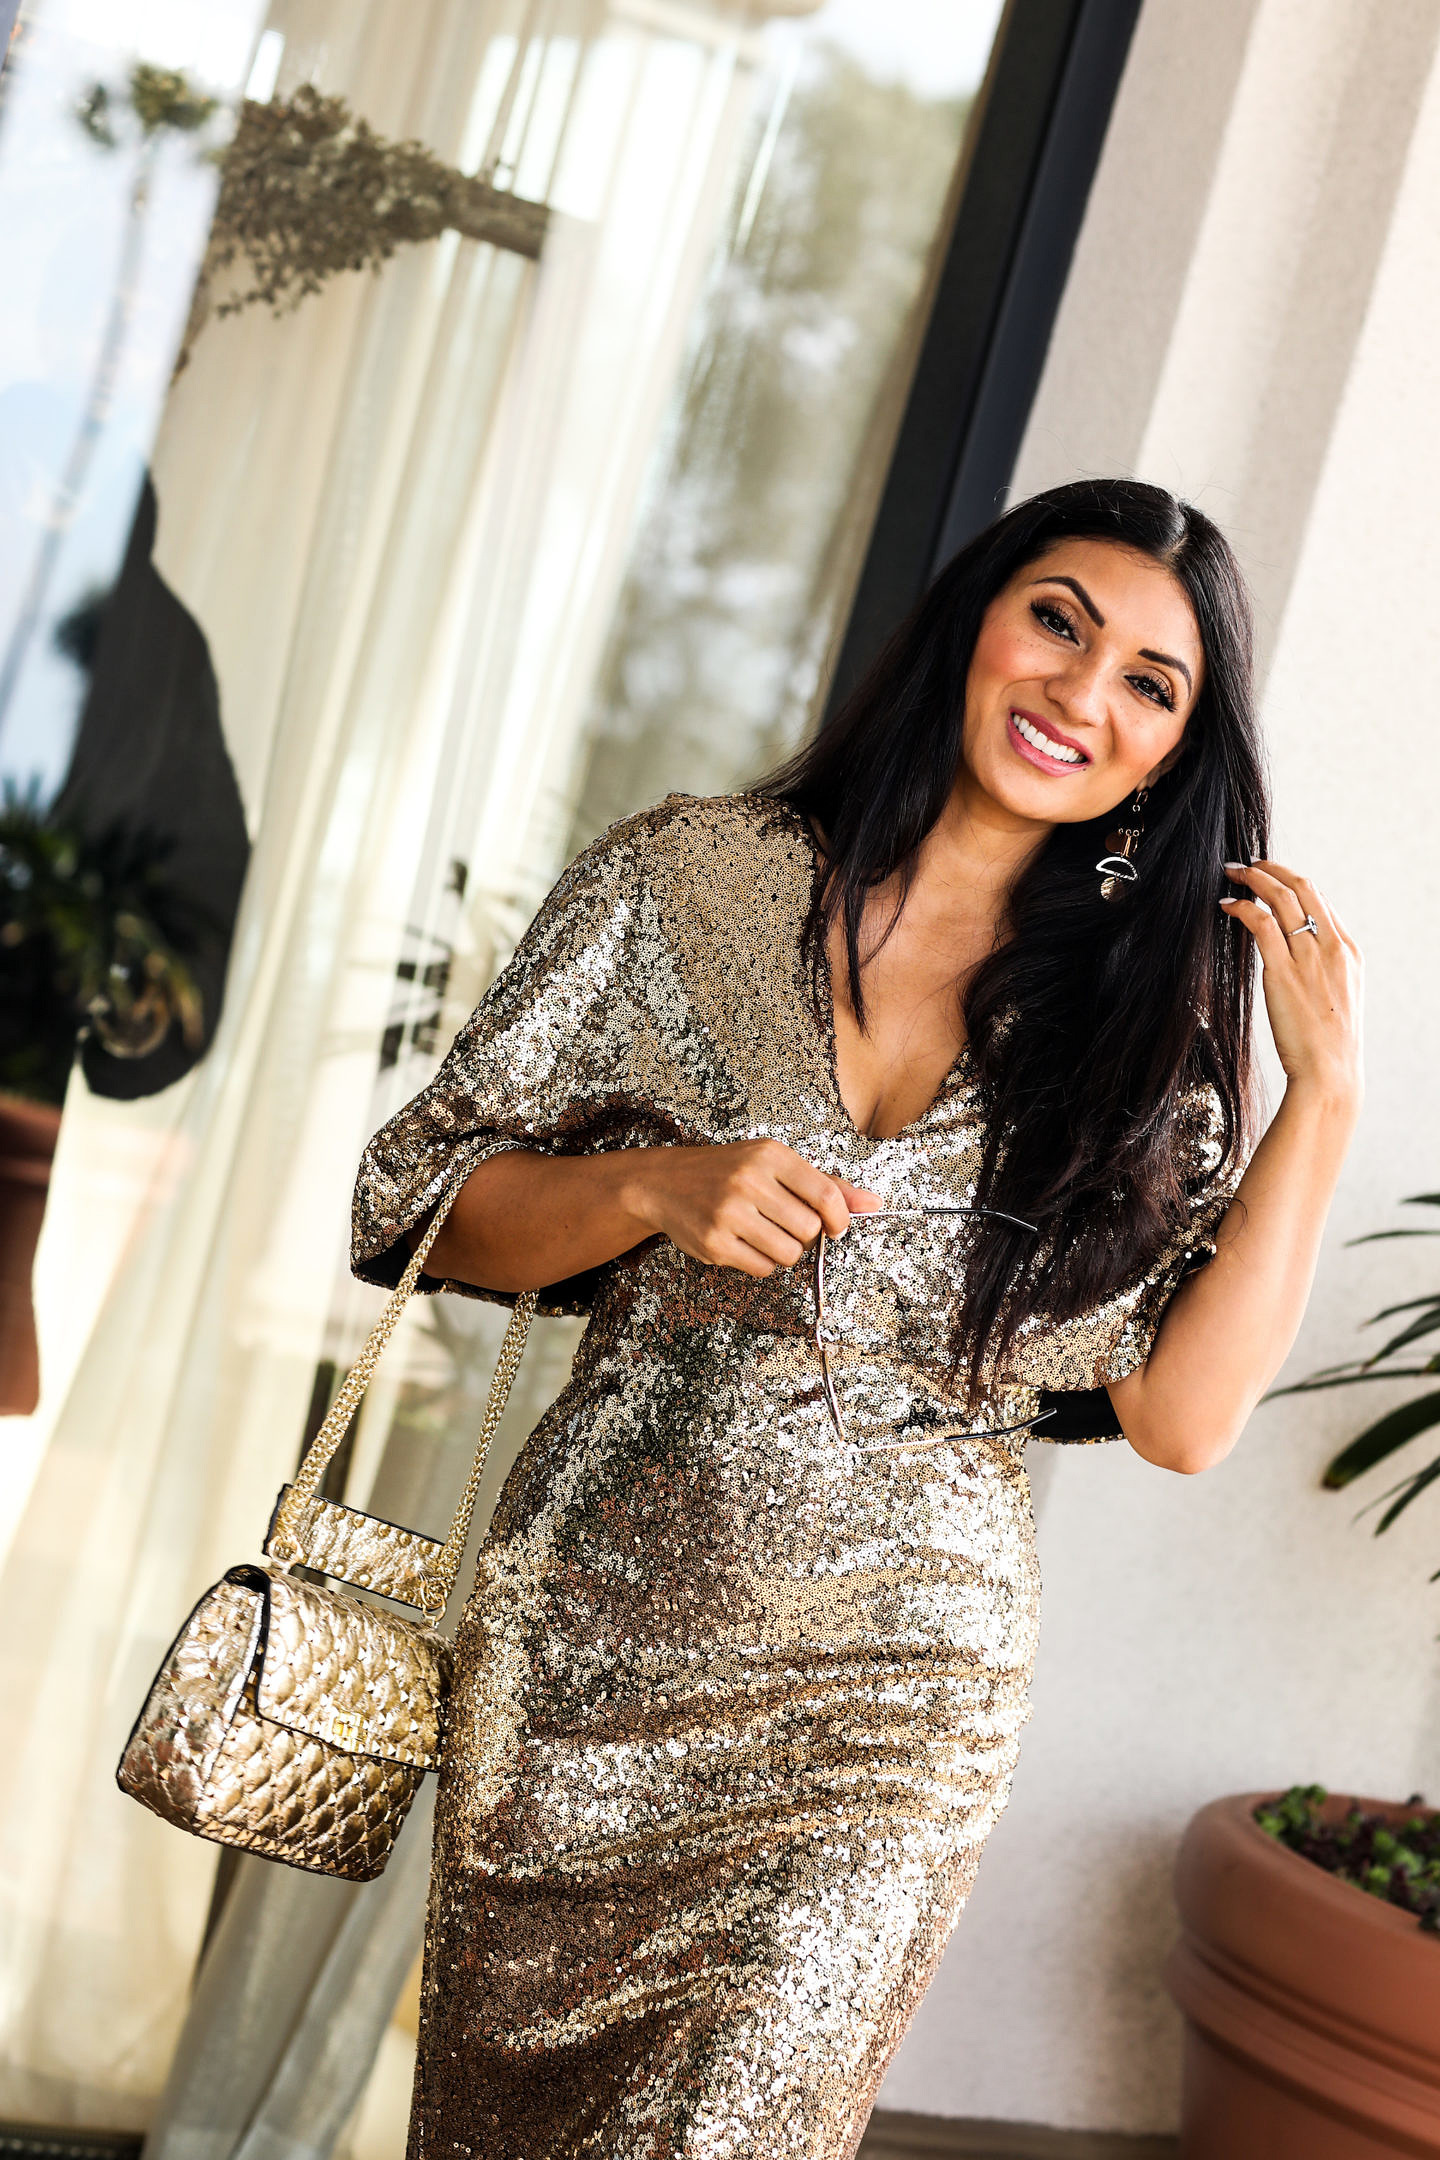 Looking for the perfect NYE outfit? Orange County Blogger Debbie Savage is sharing her sparkly New Year's Eve Outfit Ideas here! Click to see them!